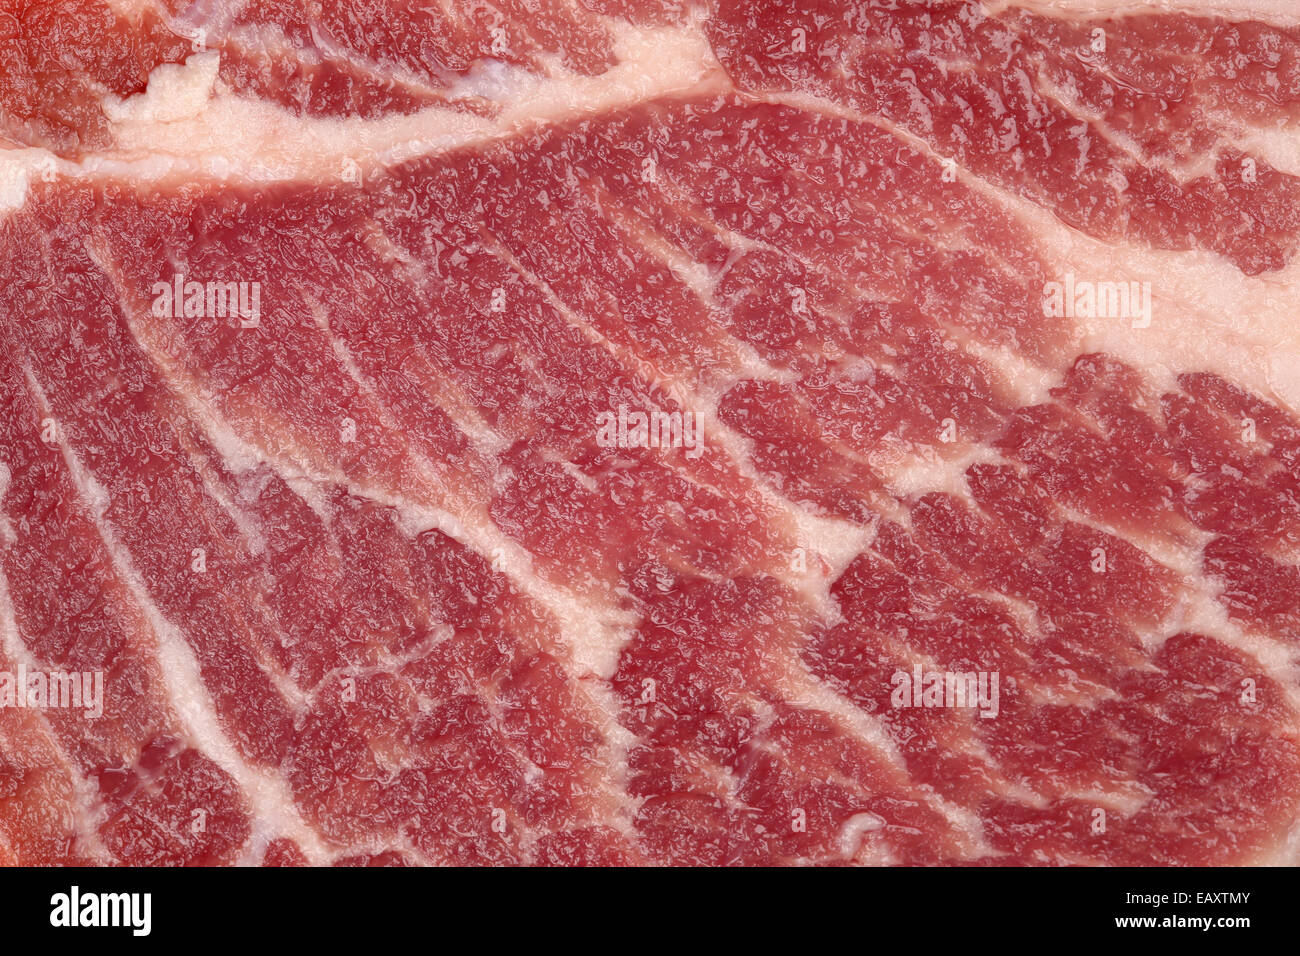 Raw pork meat cutlet steak background and texture - Stock Image